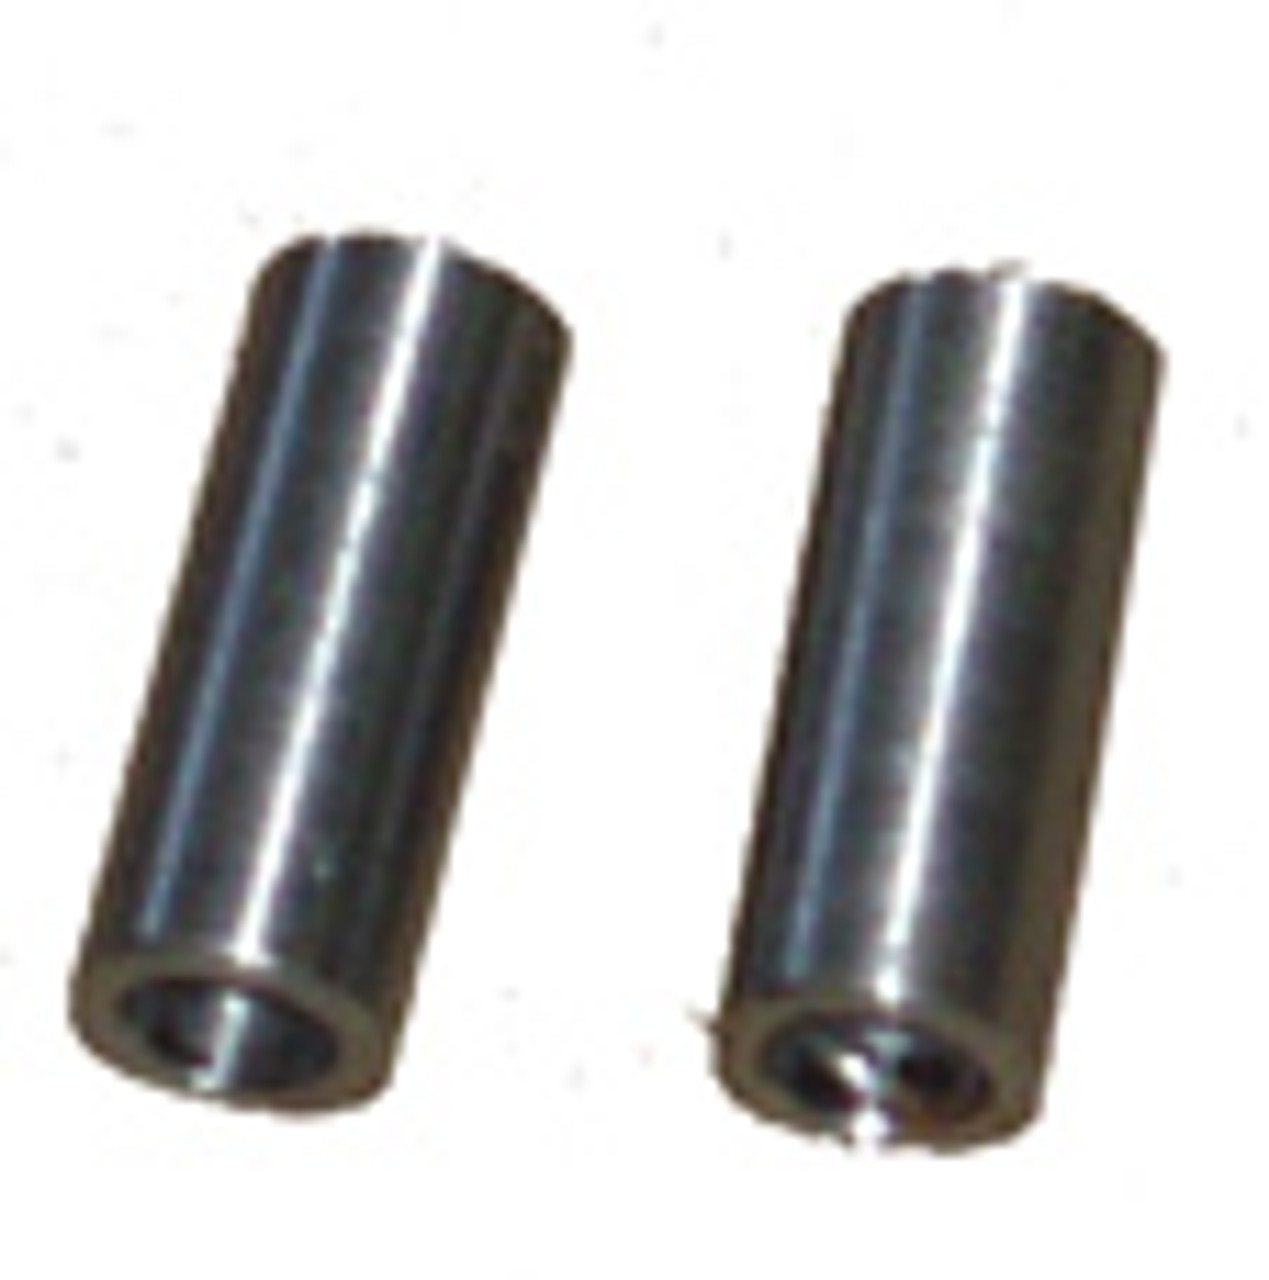 MG42 Barrel Door Rivets